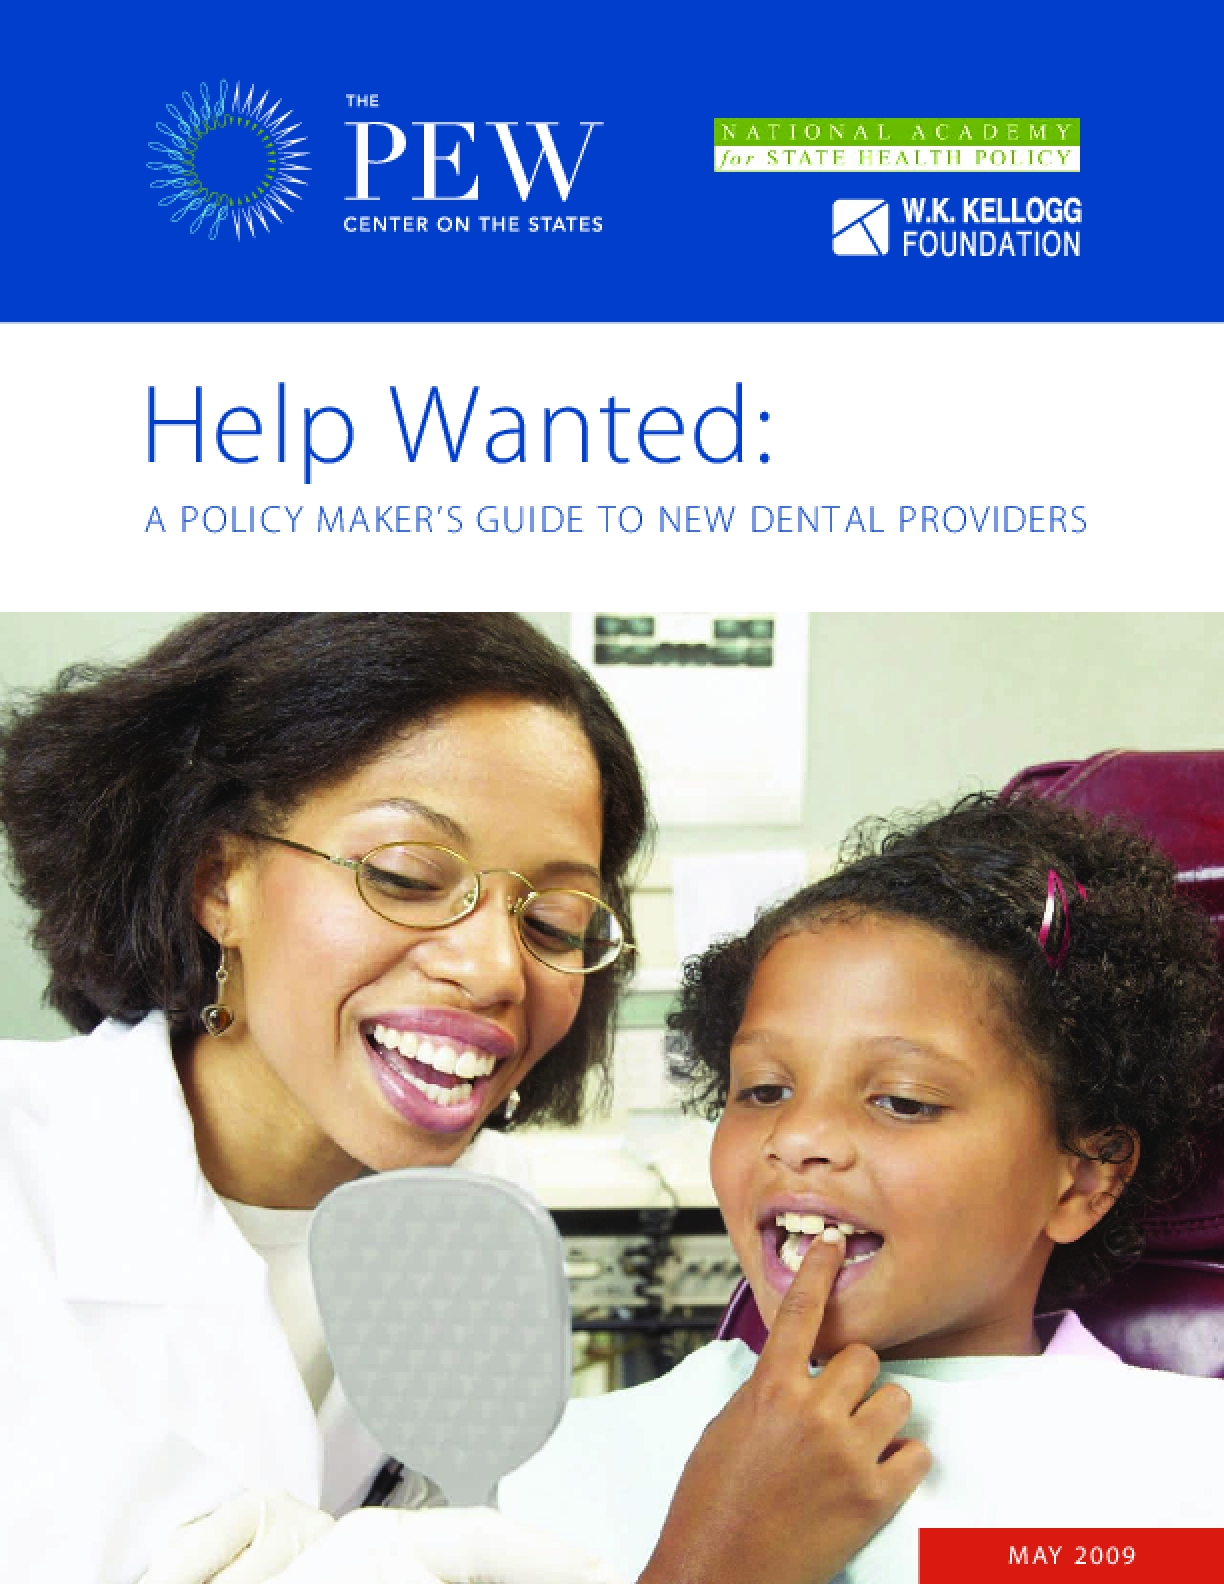 Help Wanted: A Policy Maker's Guide to New Dental Providers